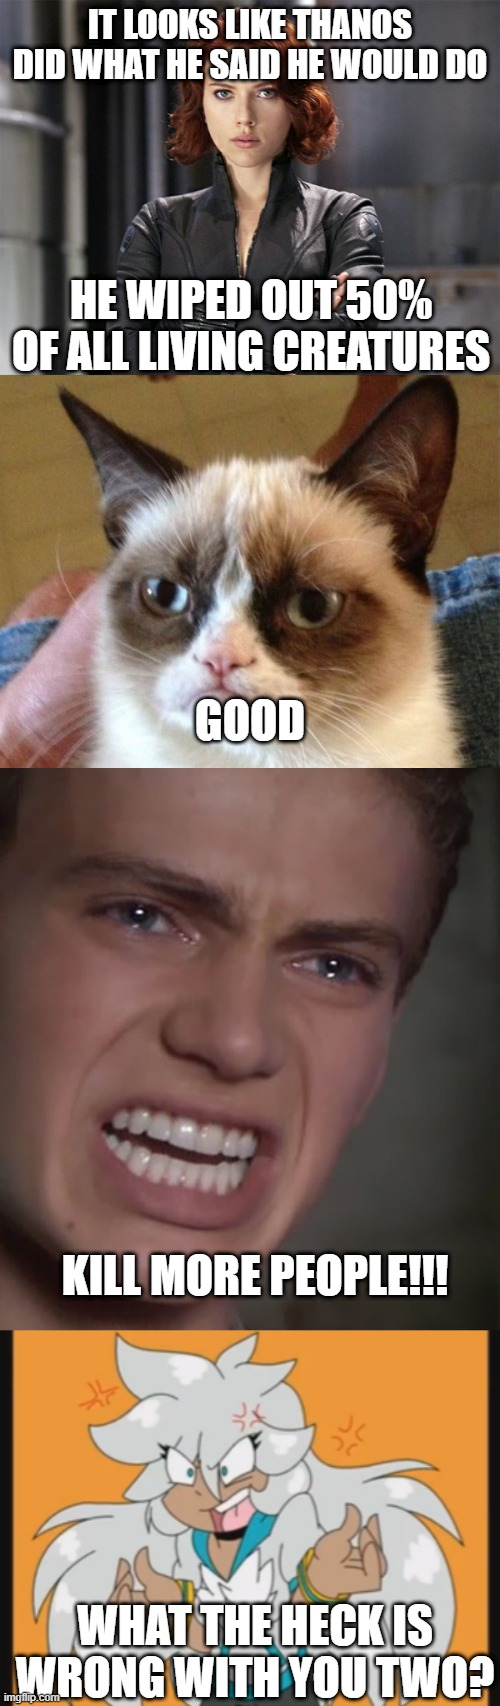 Avengers 4 Commentary |  IT LOOKS LIKE THANOS DID WHAT HE SAID HE WOULD DO; HE WIPED OUT 50% OF ALL LIVING CREATURES; GOOD; KILL MORE PEOPLE!!! WHAT THE HECK IS WRONG WITH YOU TWO? | image tagged in memes,grumpy cat,anakin skywalker,black widow - not impressed,what is wrong with you,avengers endgame | made w/ Imgflip meme maker